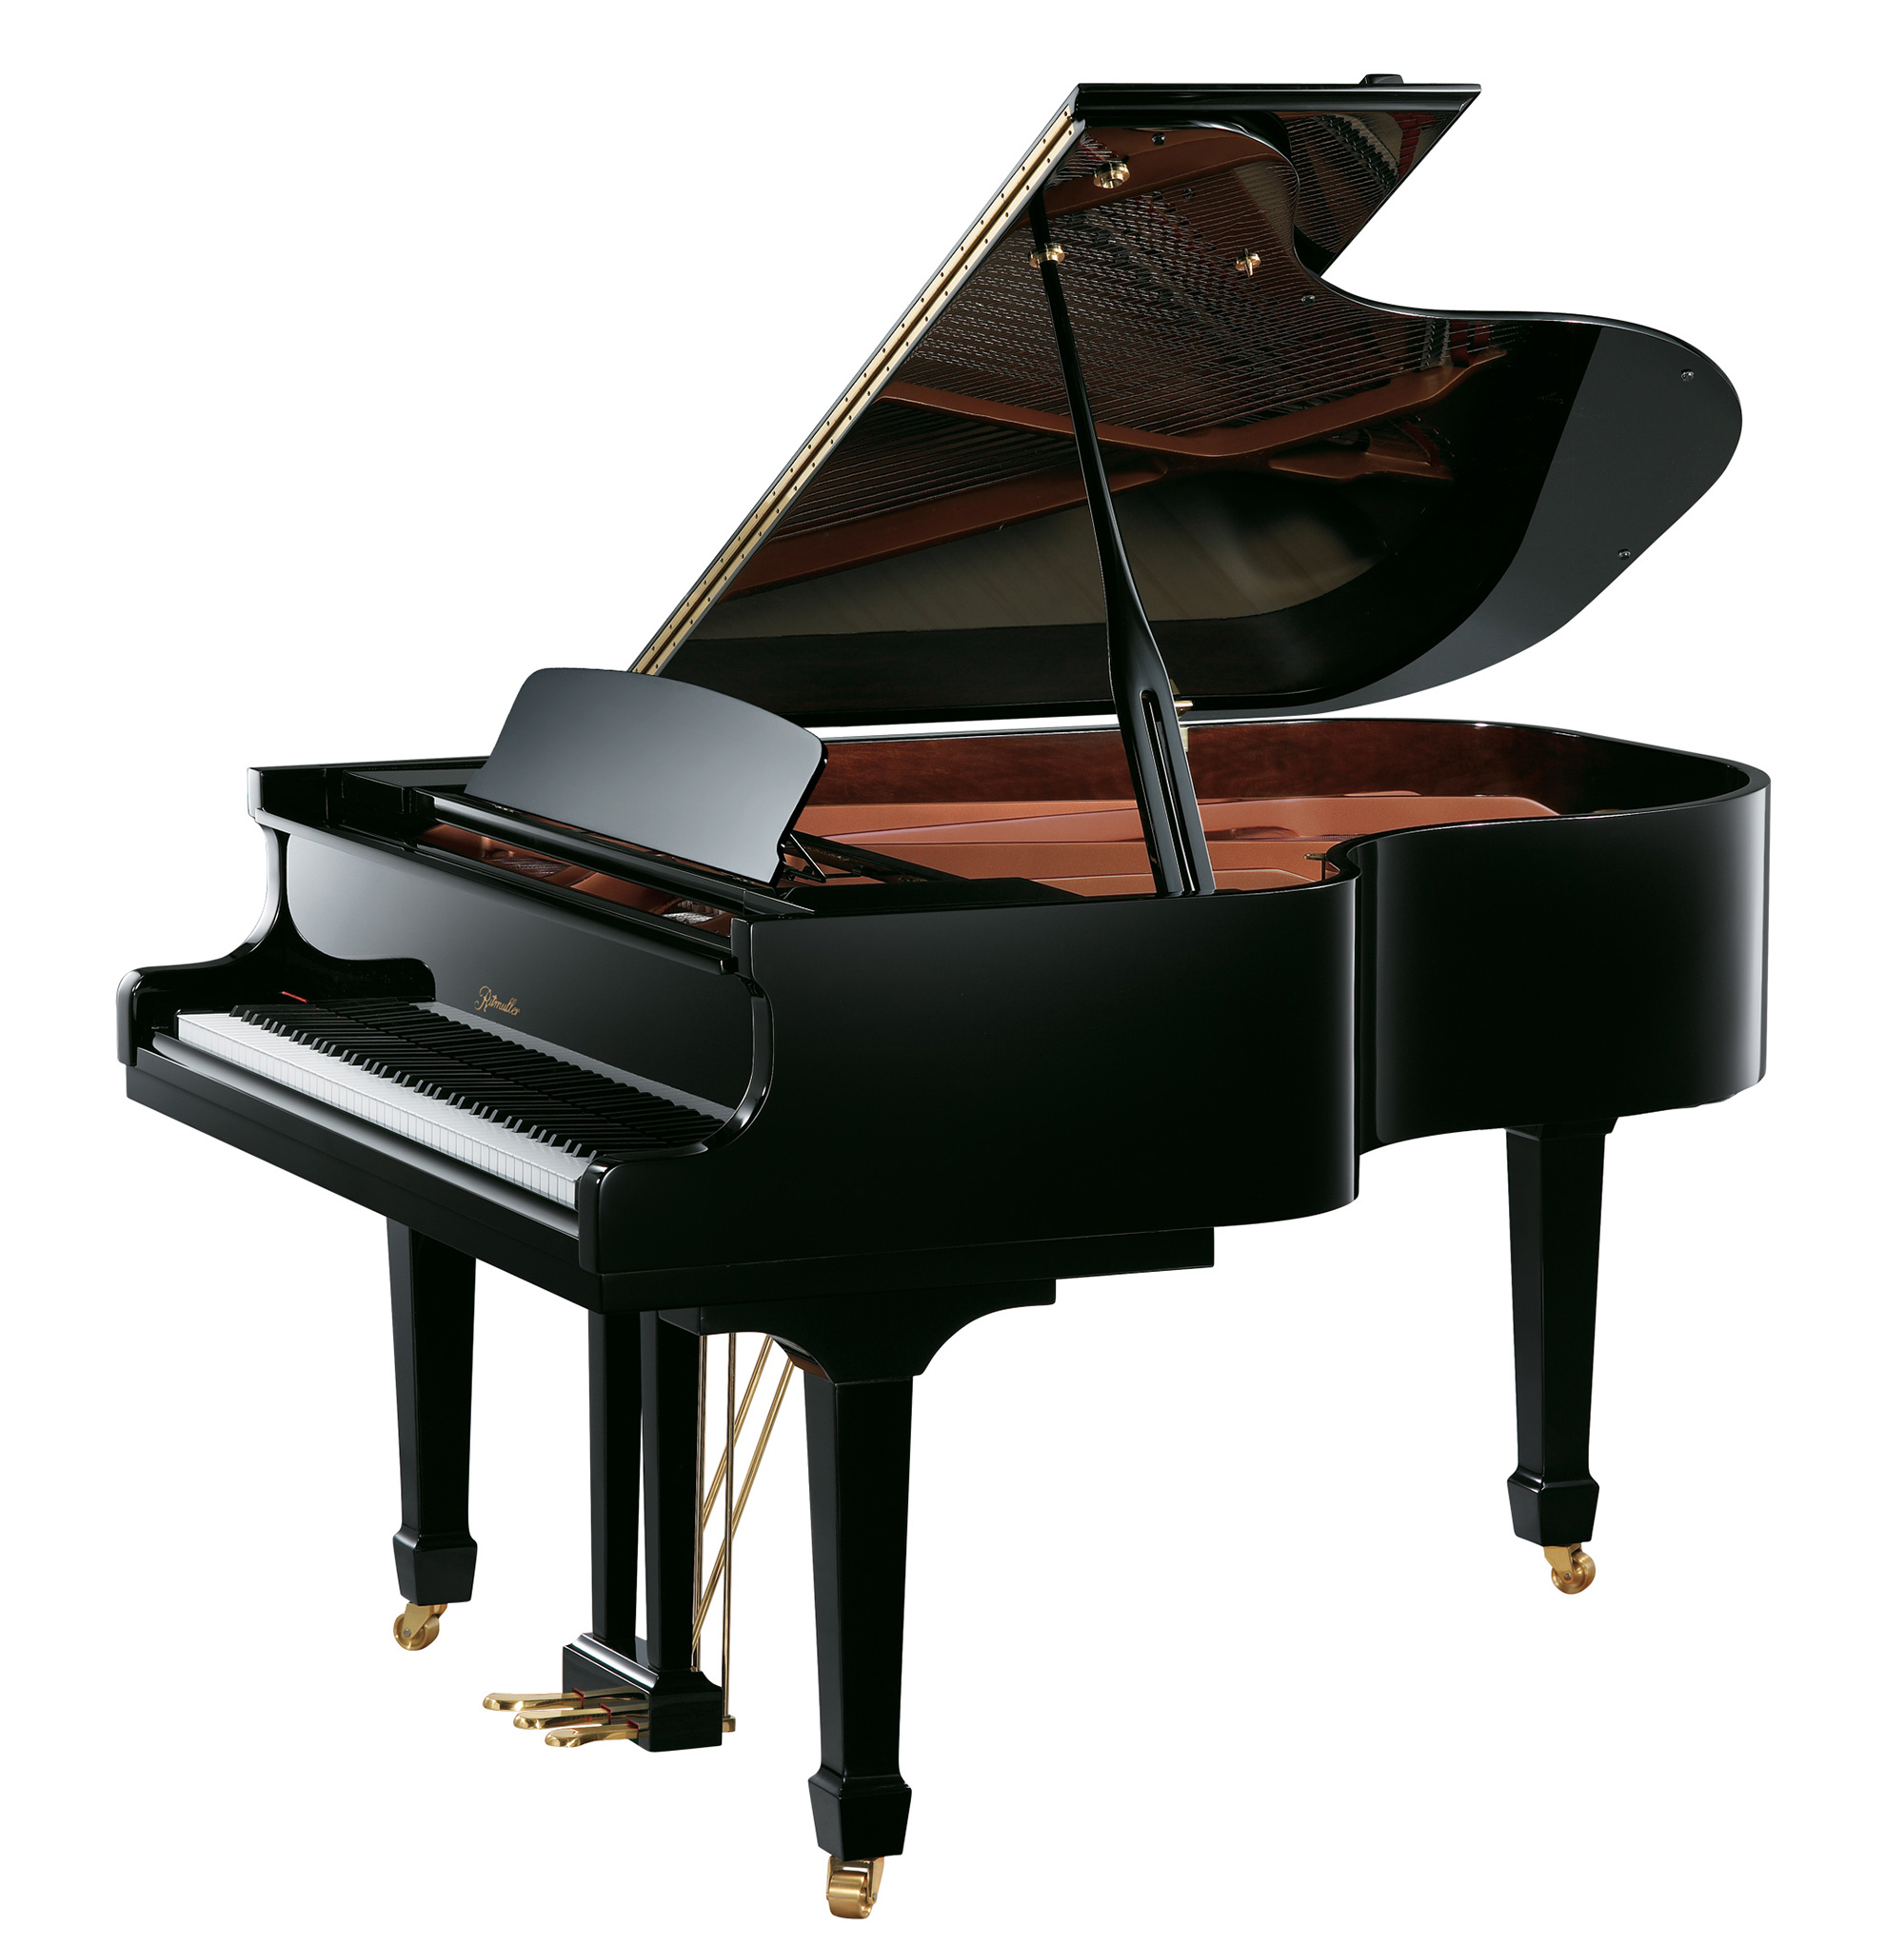 new-piano-for-sale-ritmuller-gh170r